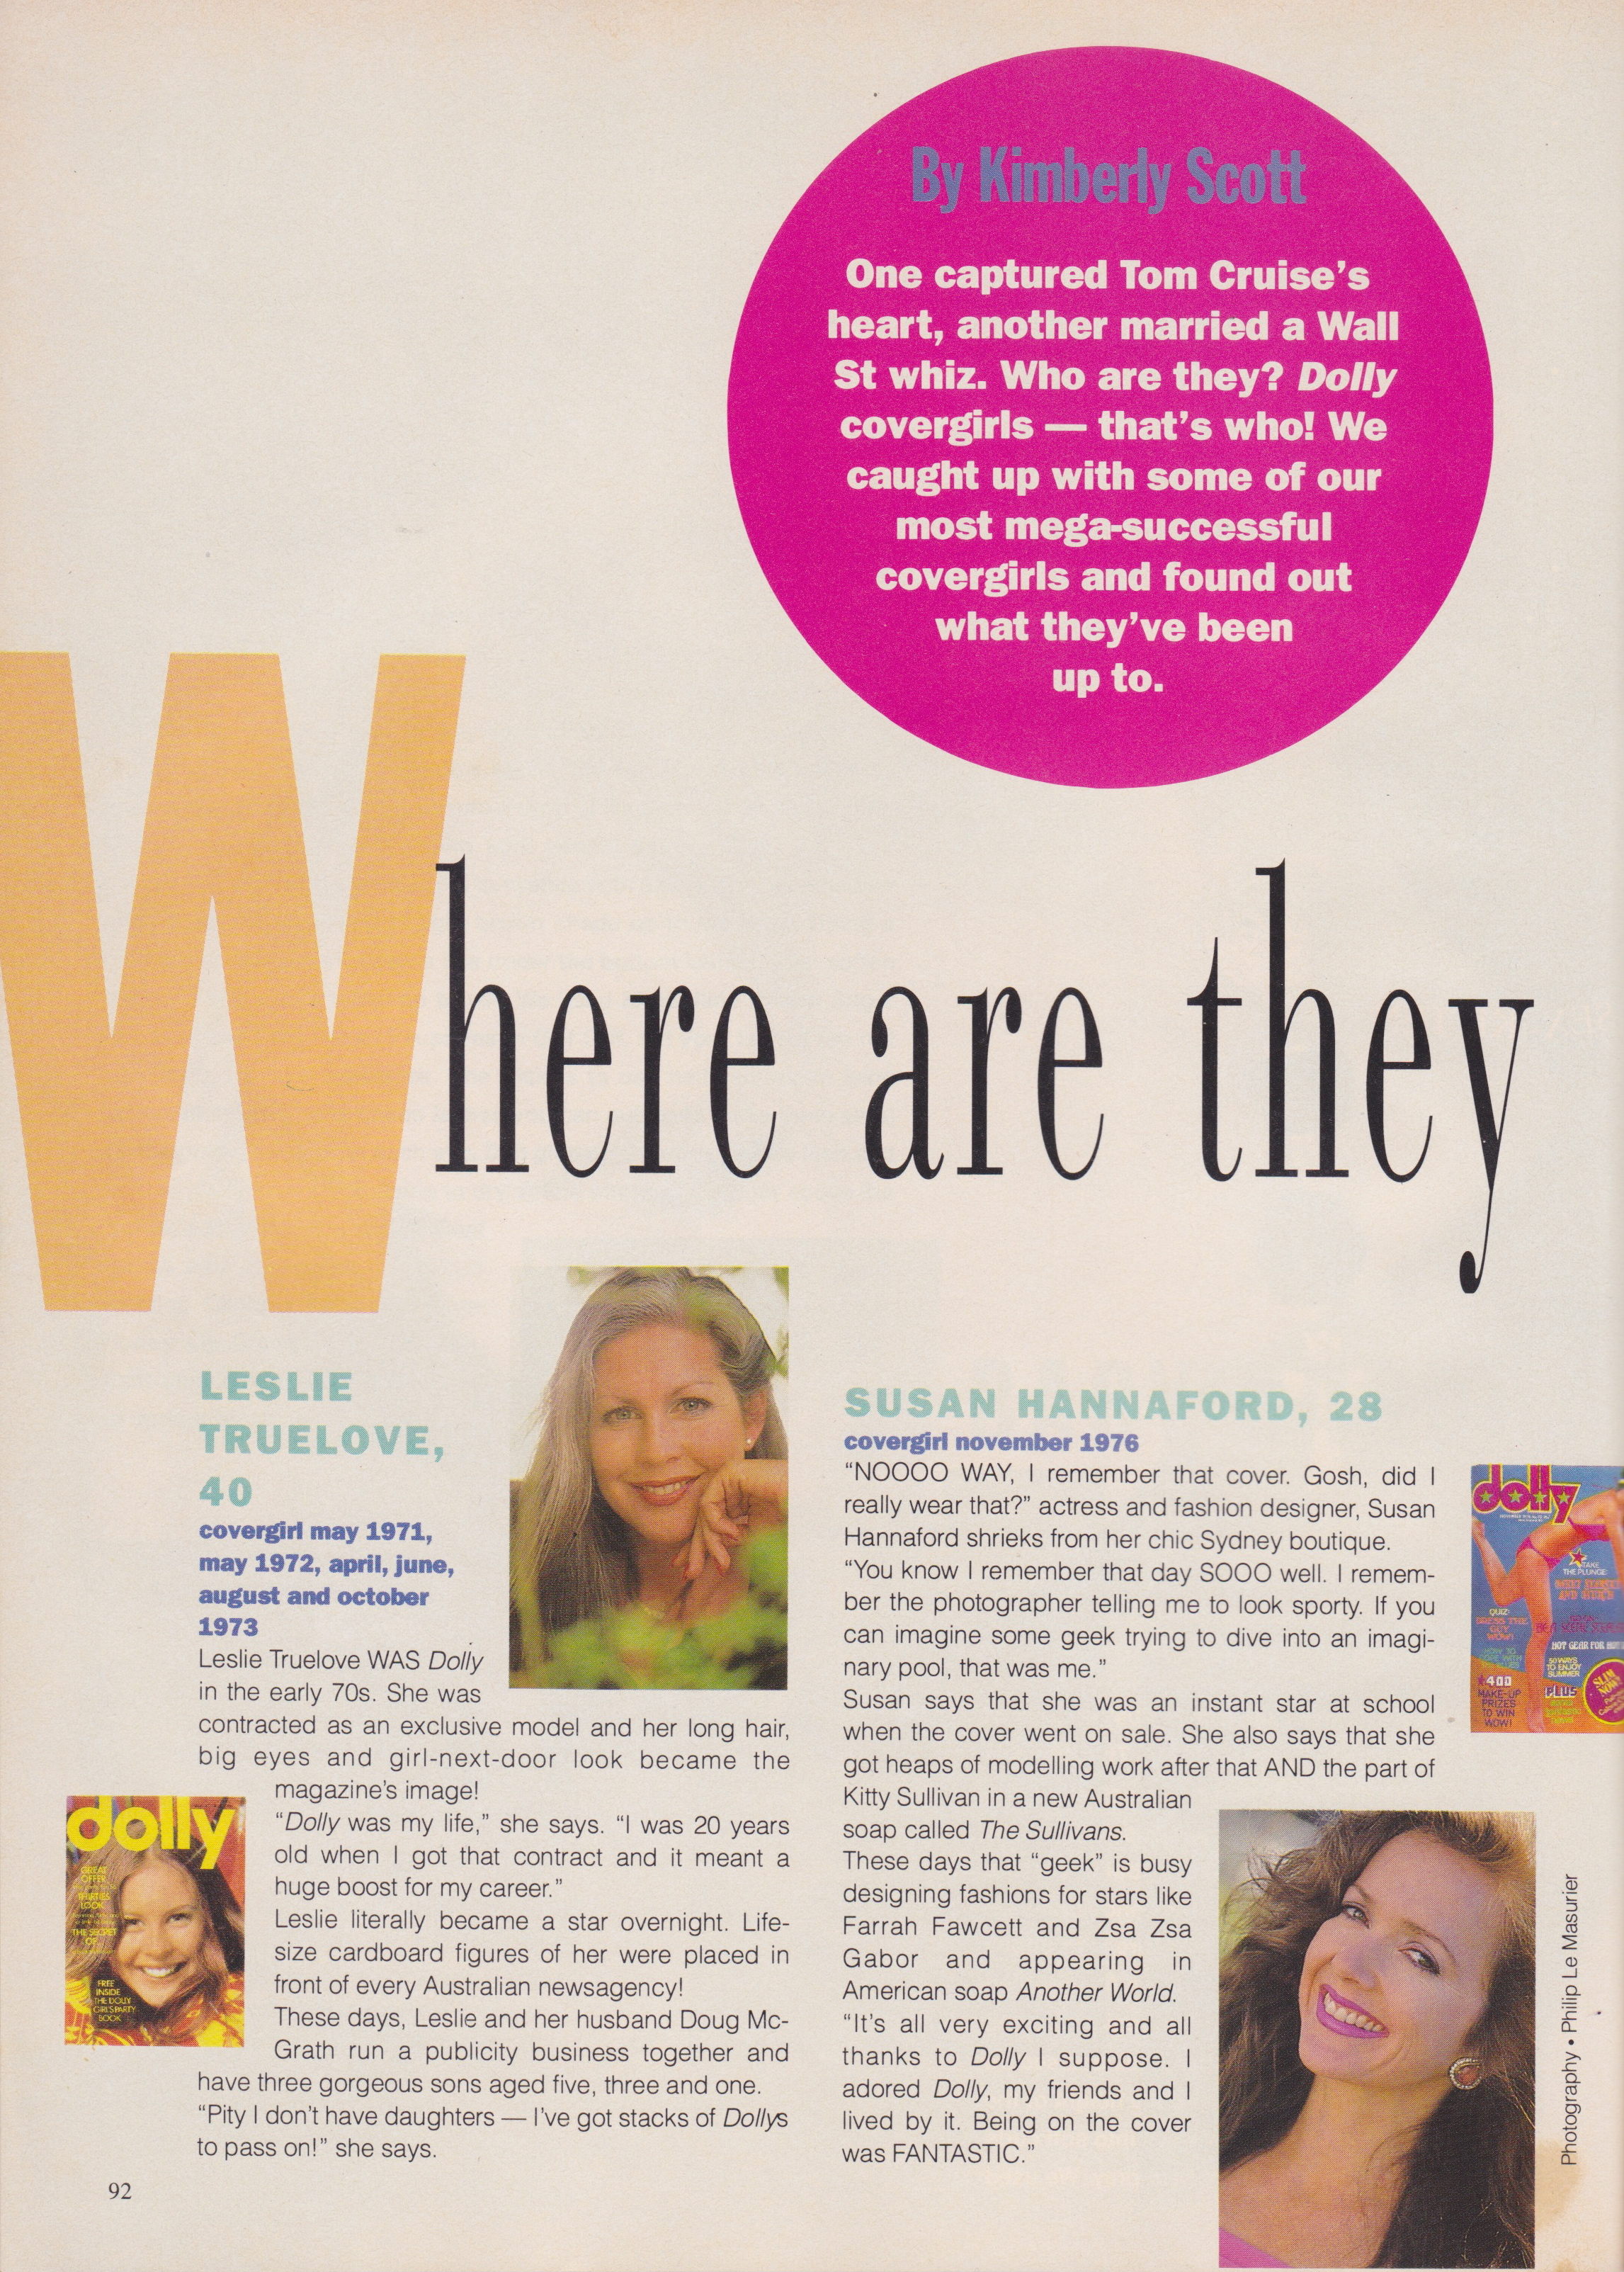 Dolly Magazine Covergirls | Where Are They Now? 01.jpeg